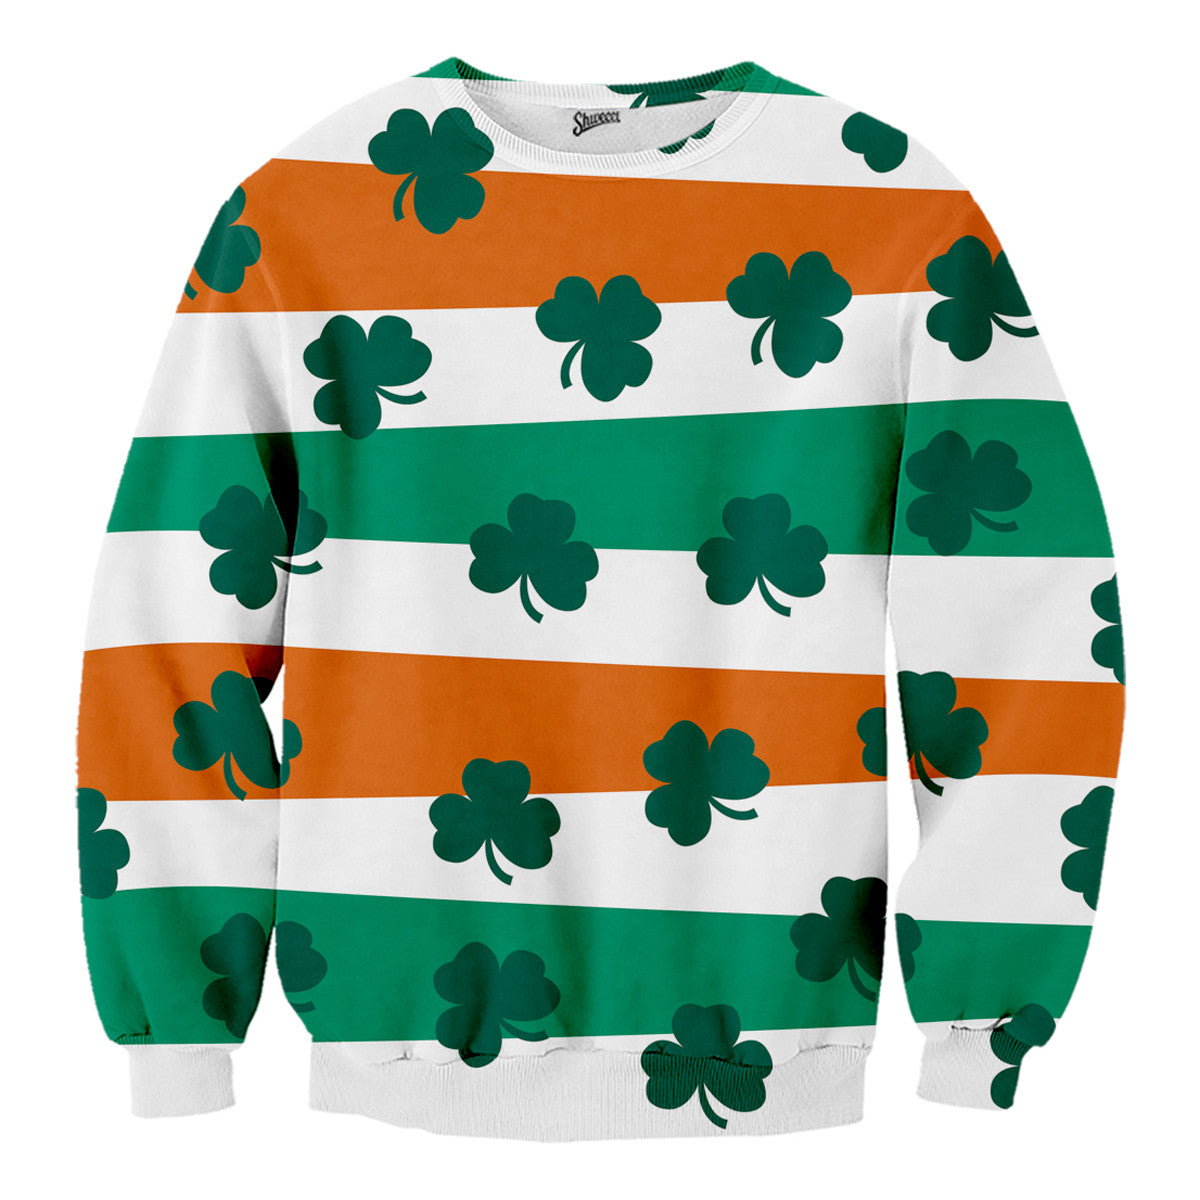 St. Patricks Day Sweater, Ireland Flag n' Clovers Sweater